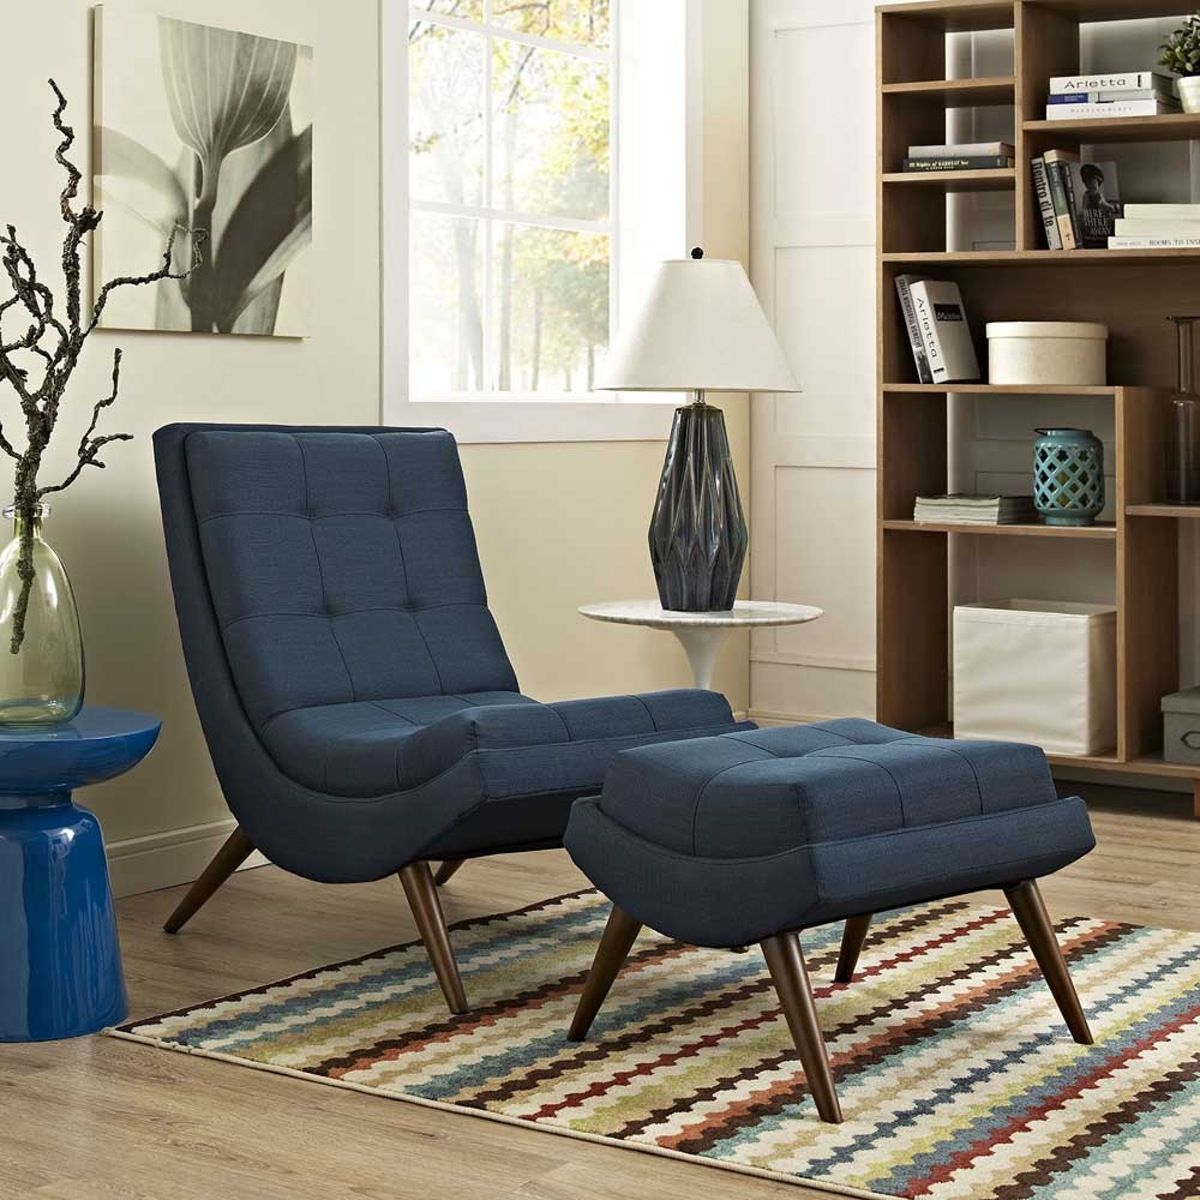 Modway Ramp Fabric Lounge Chair Set Chair And Ottoman Set Fabric Lounge Chair Living Room Modern